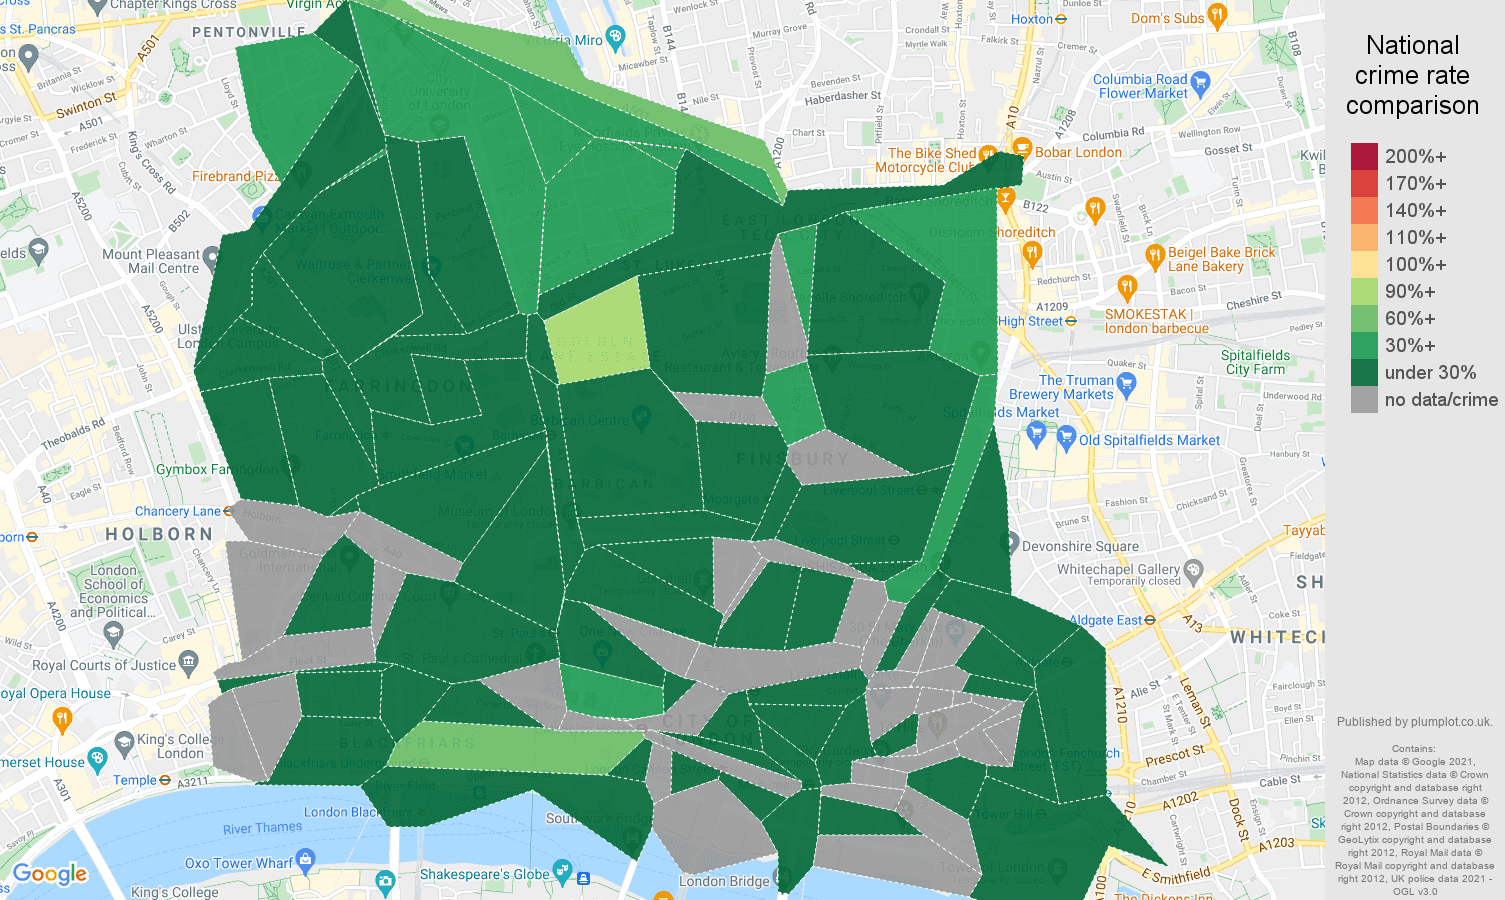 East Central London criminal damage and arson crime rate comparison map